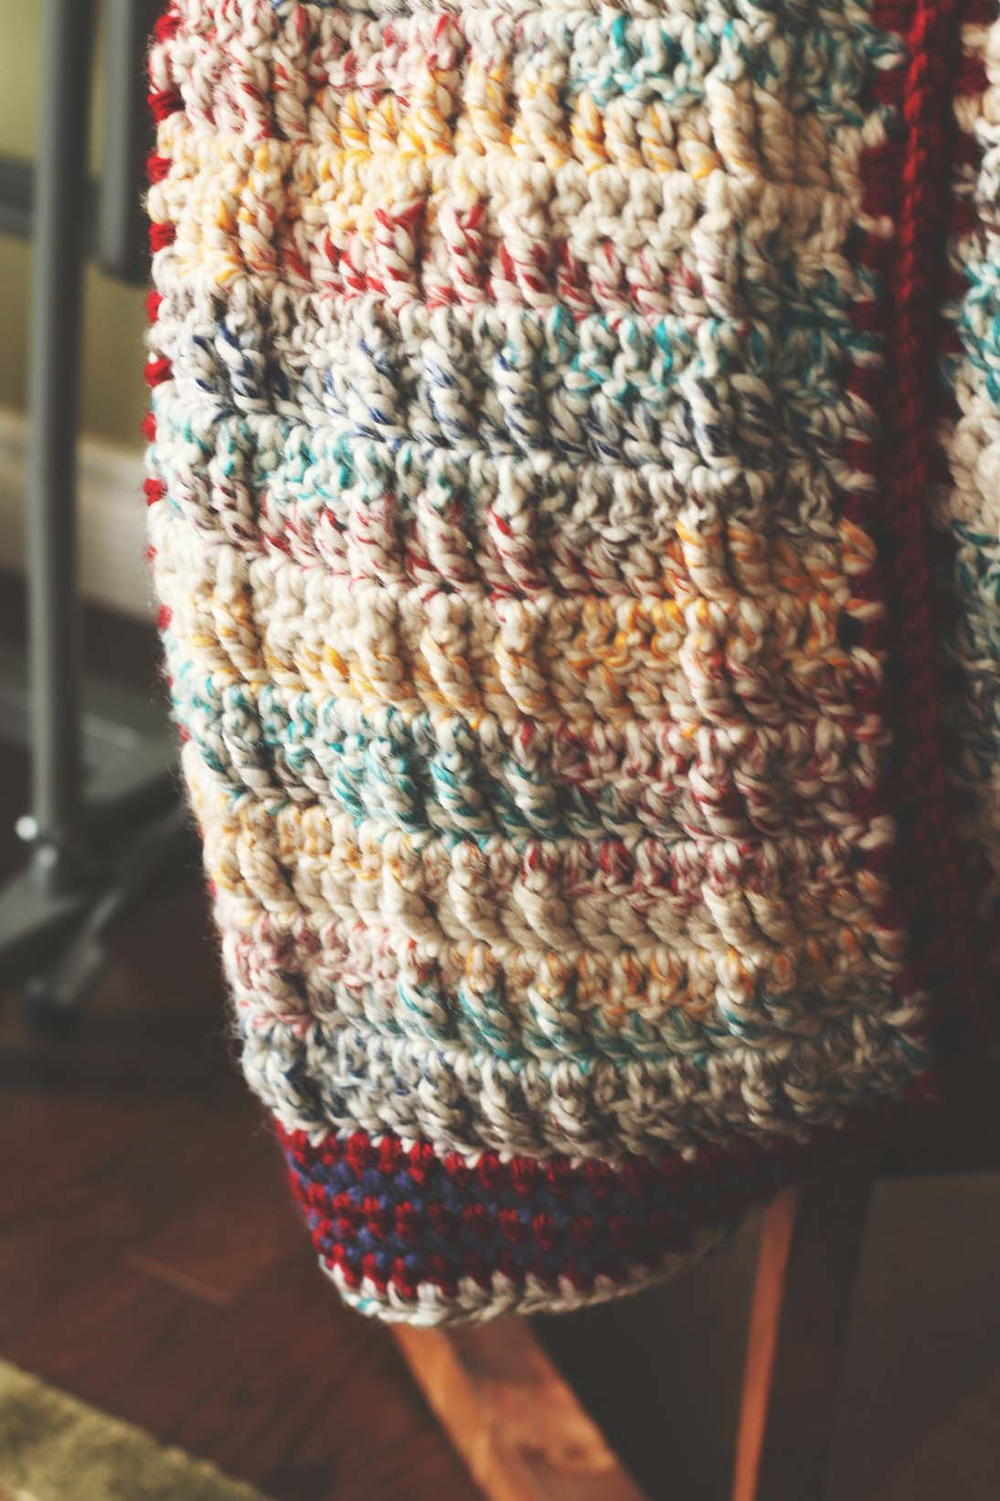 Free Crochet Afghan Patterns Cable Legitefo For